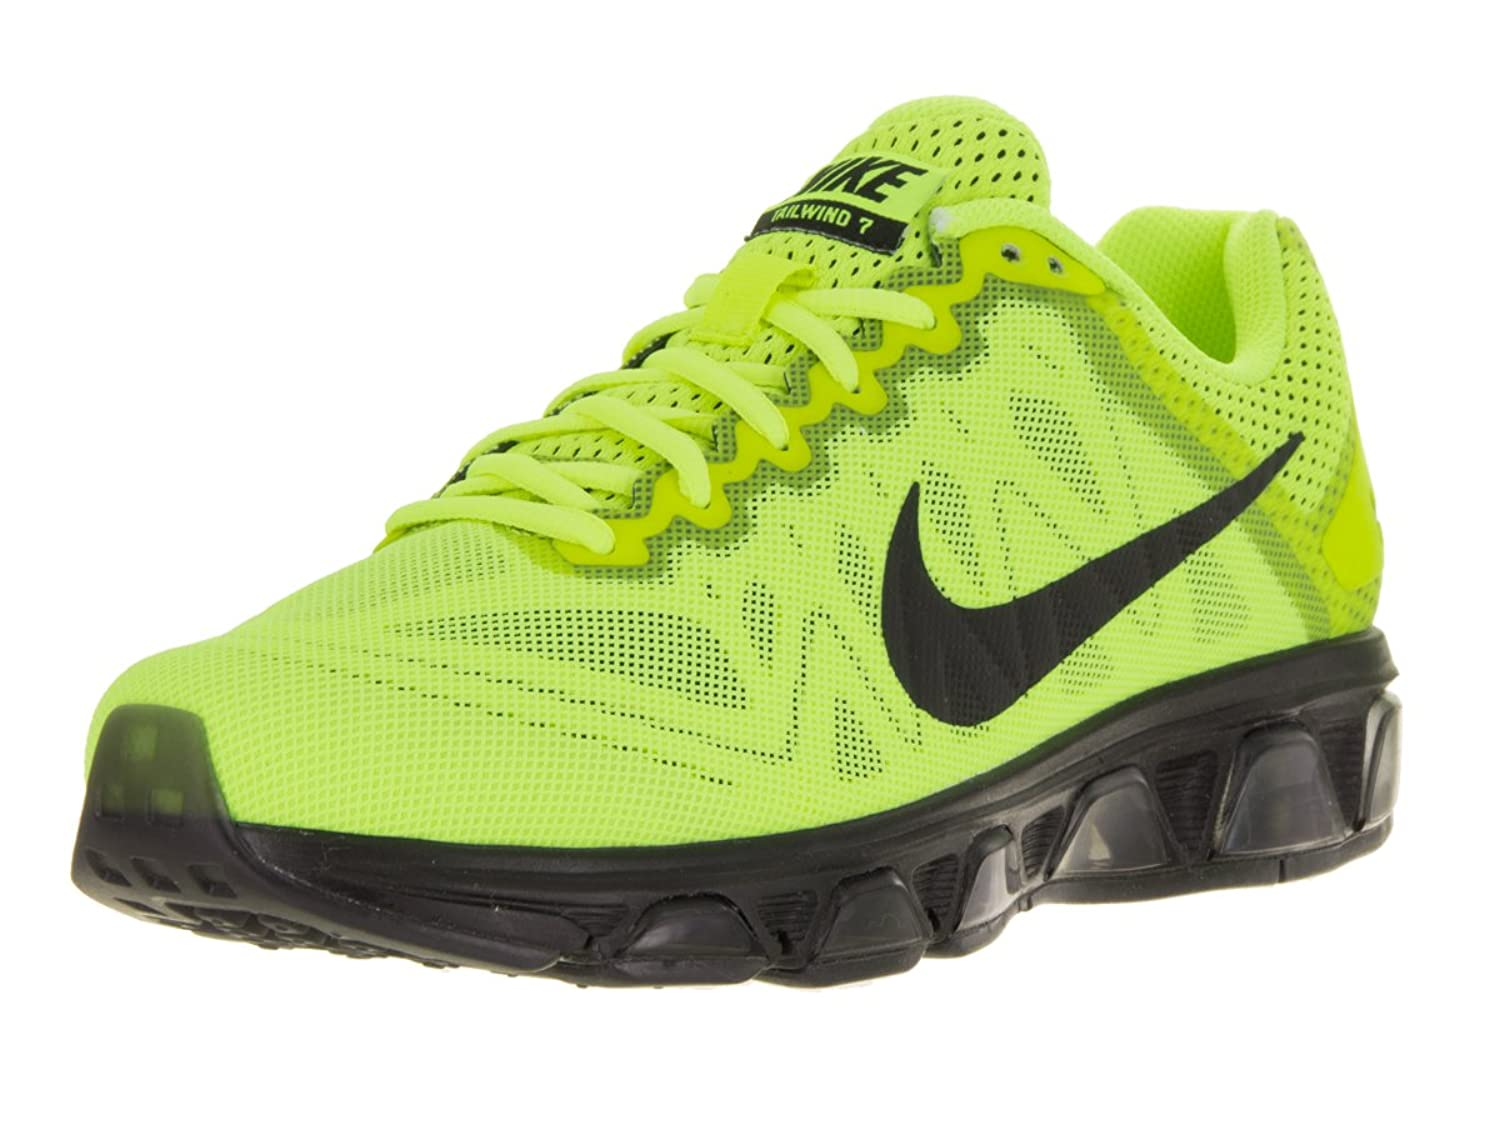 czech durable modeling nike mens air max tailwind 7 running shoe. e0066  834d4 cad932166